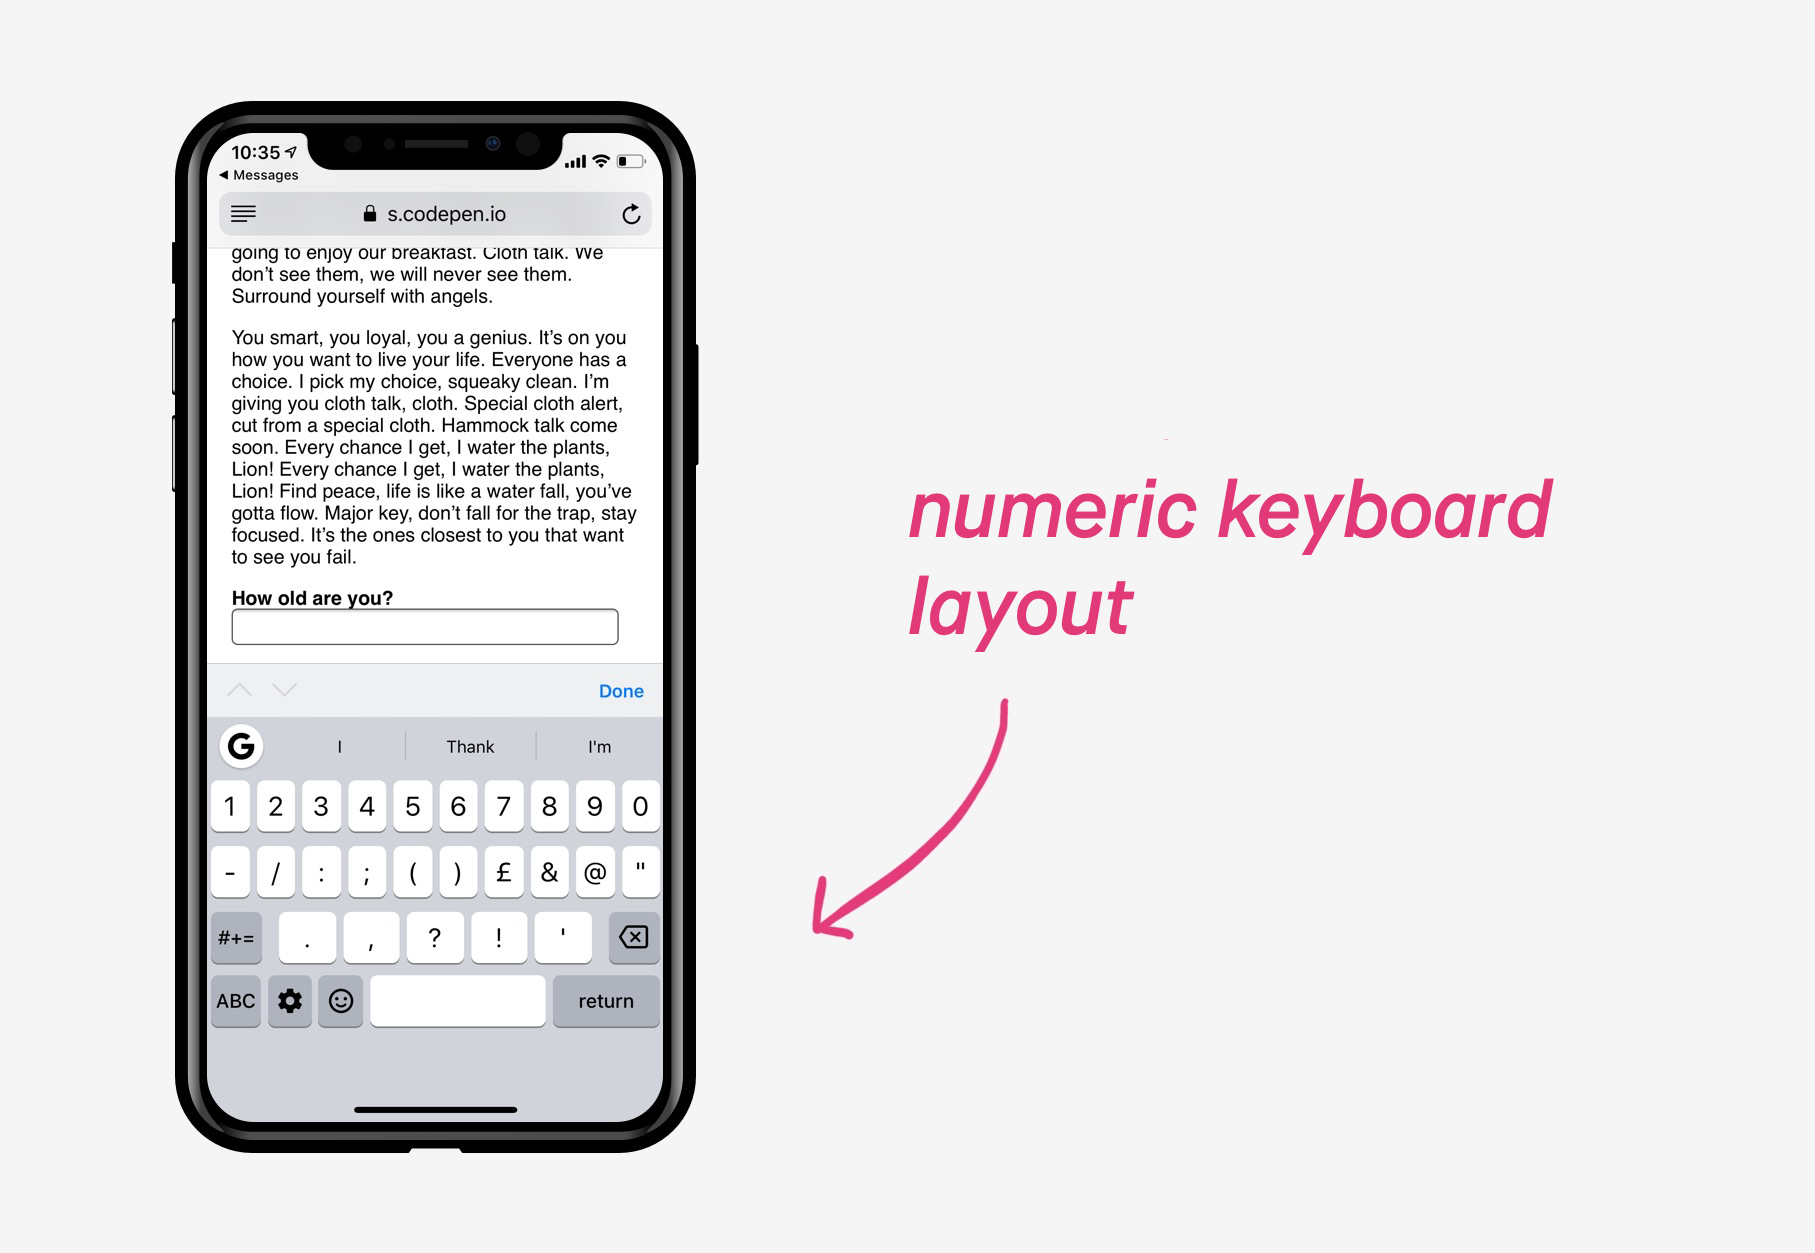 Numeric keyboard layout